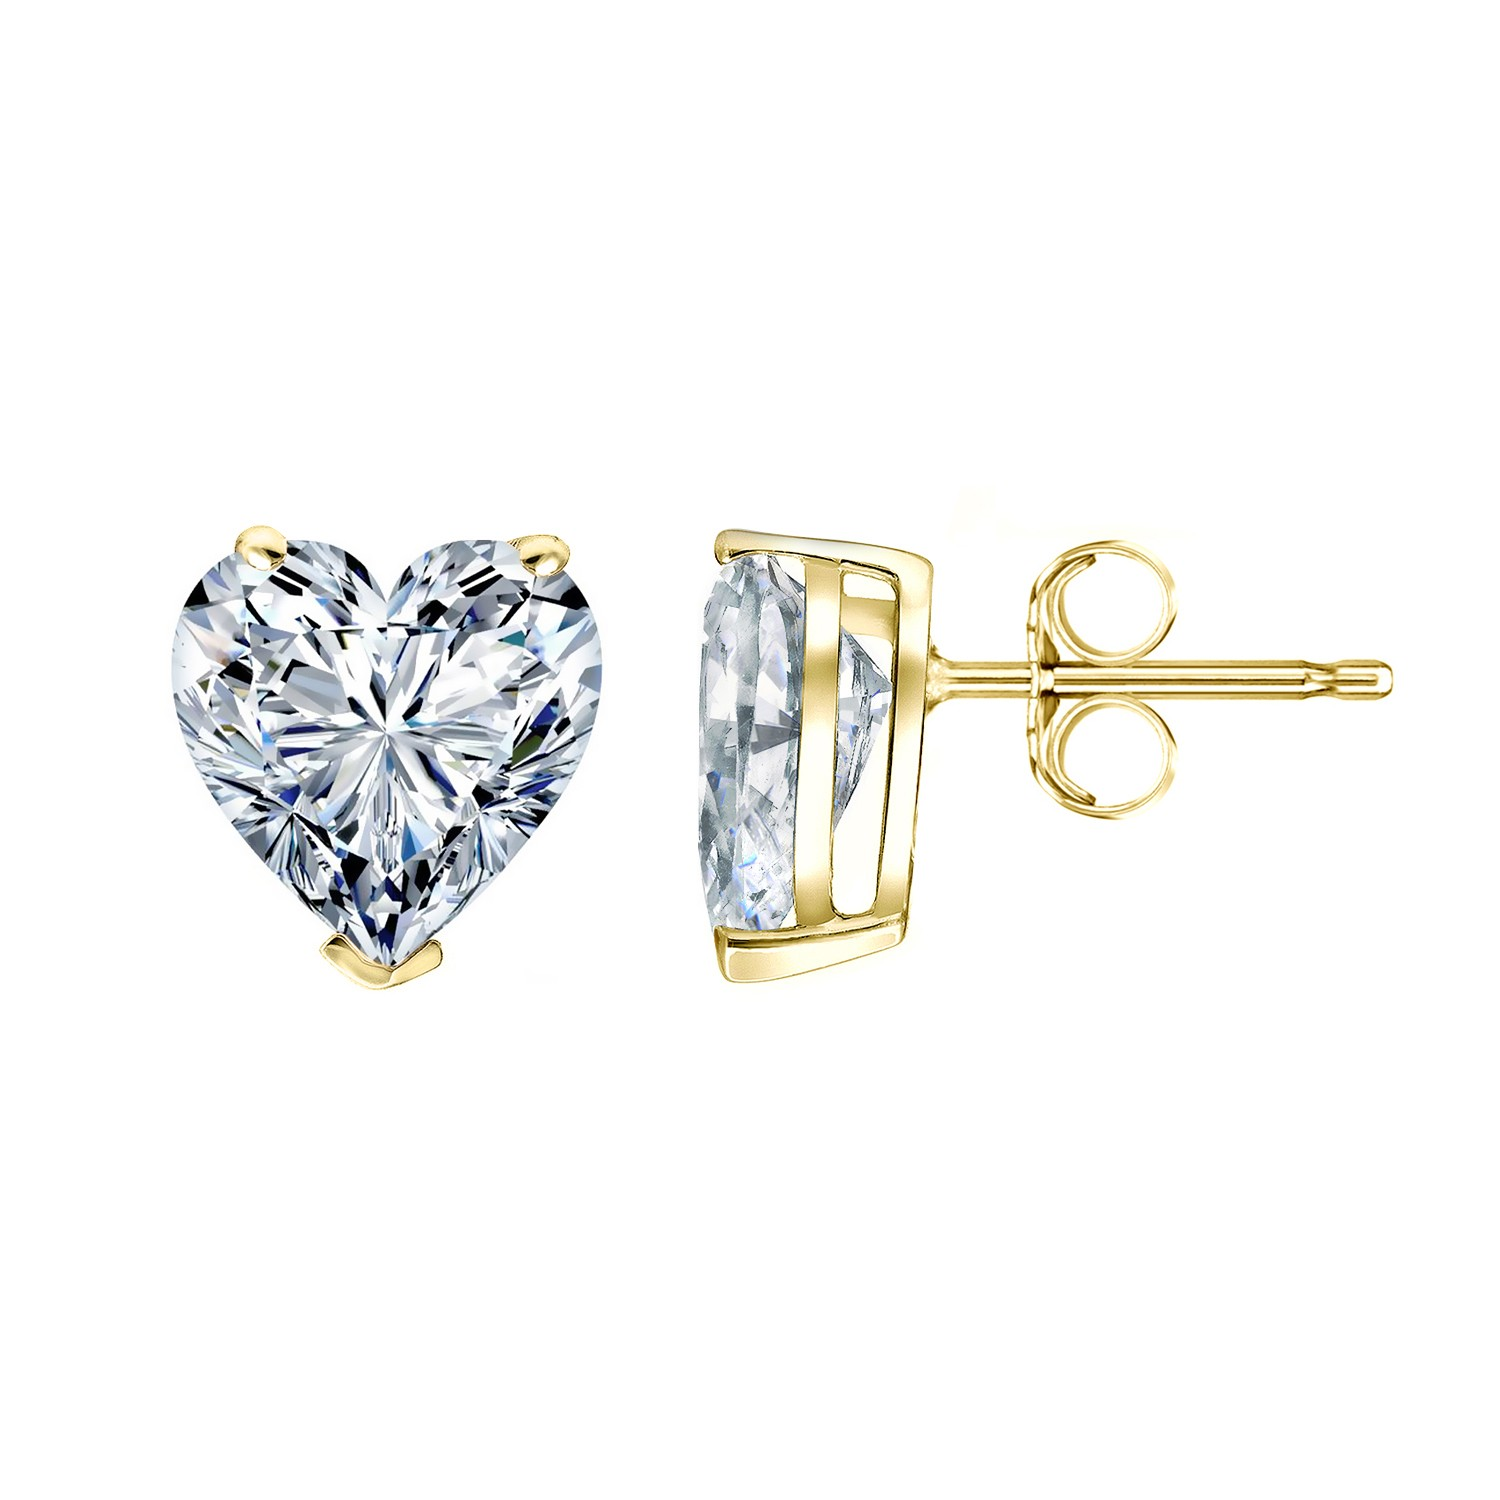 Certified 14k Yellow Gold Heart Diamond Stud Earrings 0.75 ct. tw. (G-H, SI1-SI2)